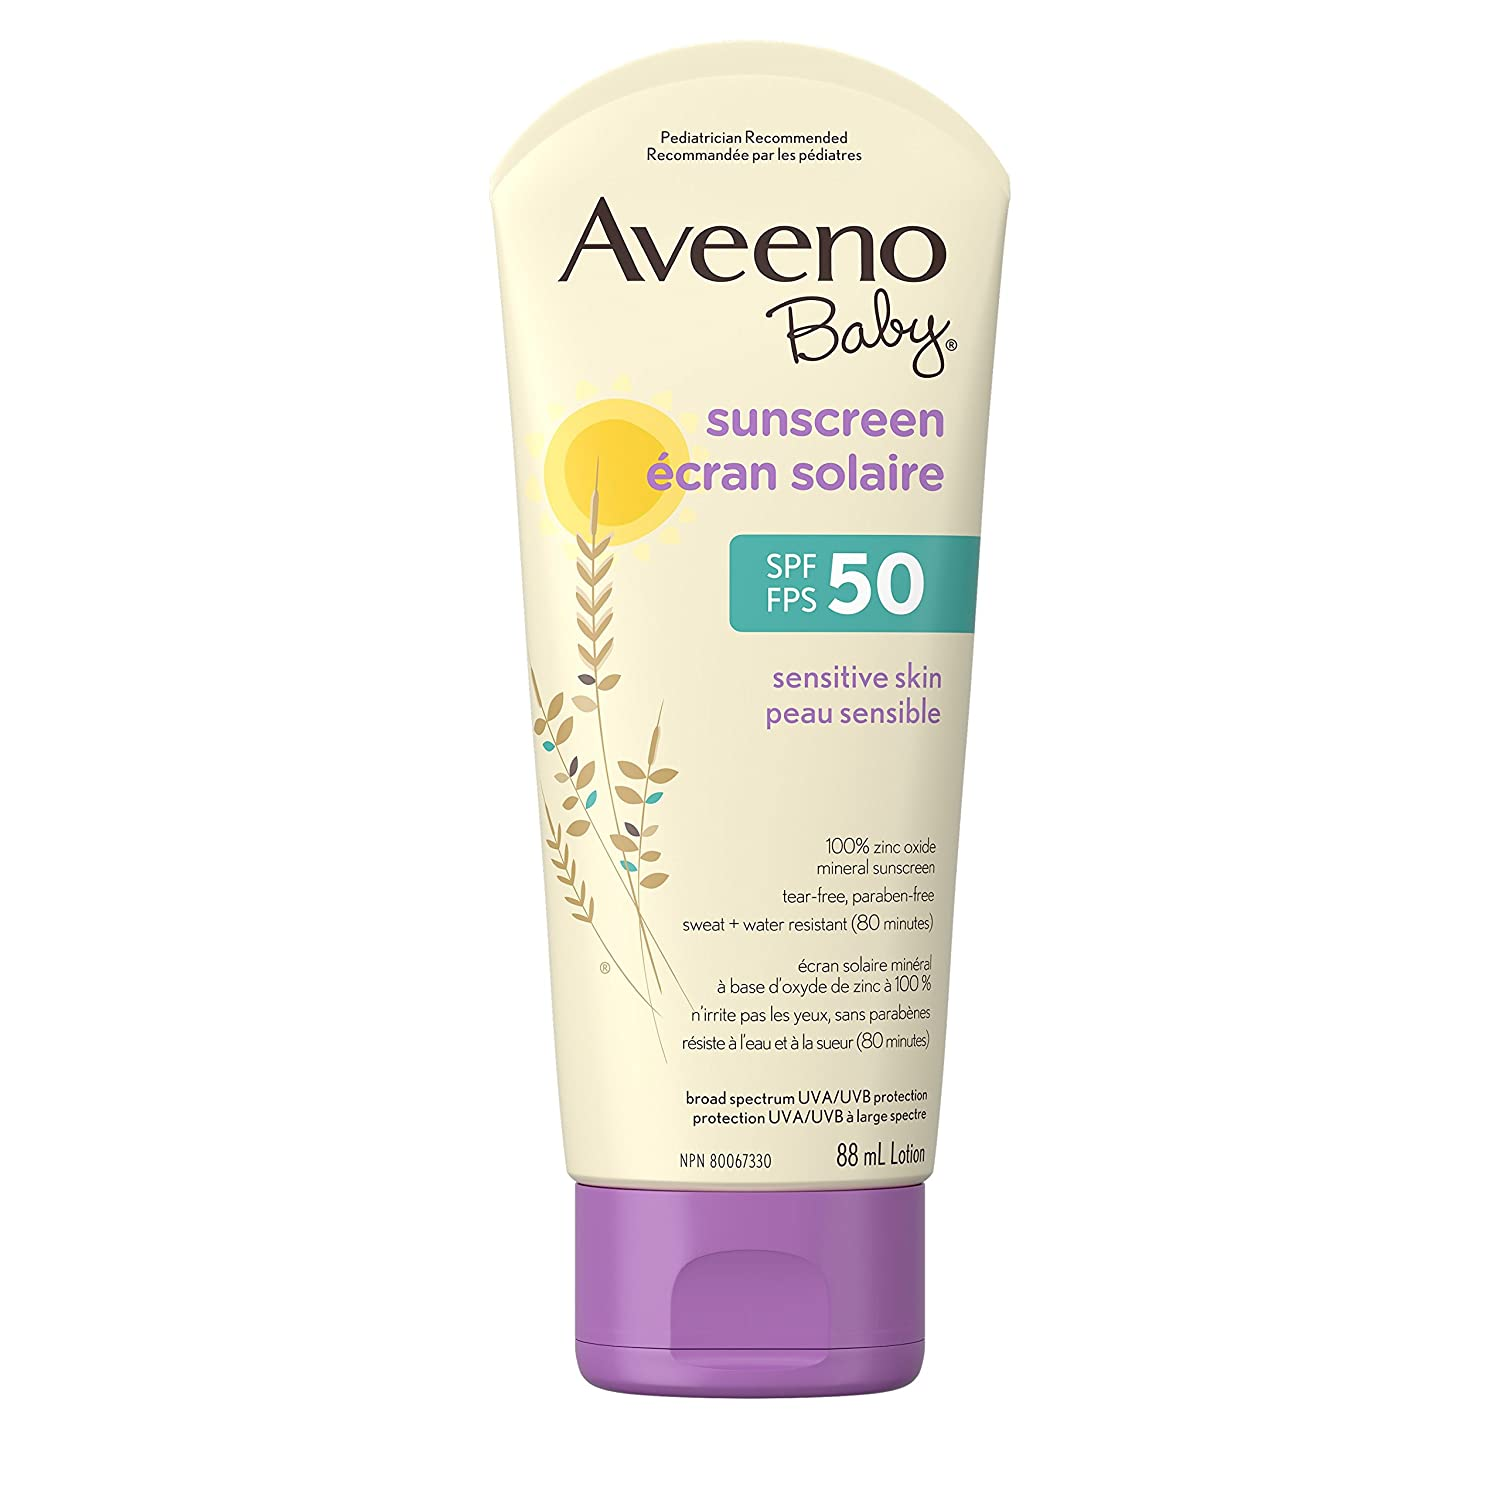 Aveeno Baby Mineral Sunscreen Lotion SPF 50, with Zinc Oxide Active Naturals for Sensitive Skin, 88ml Johnson & Johnson